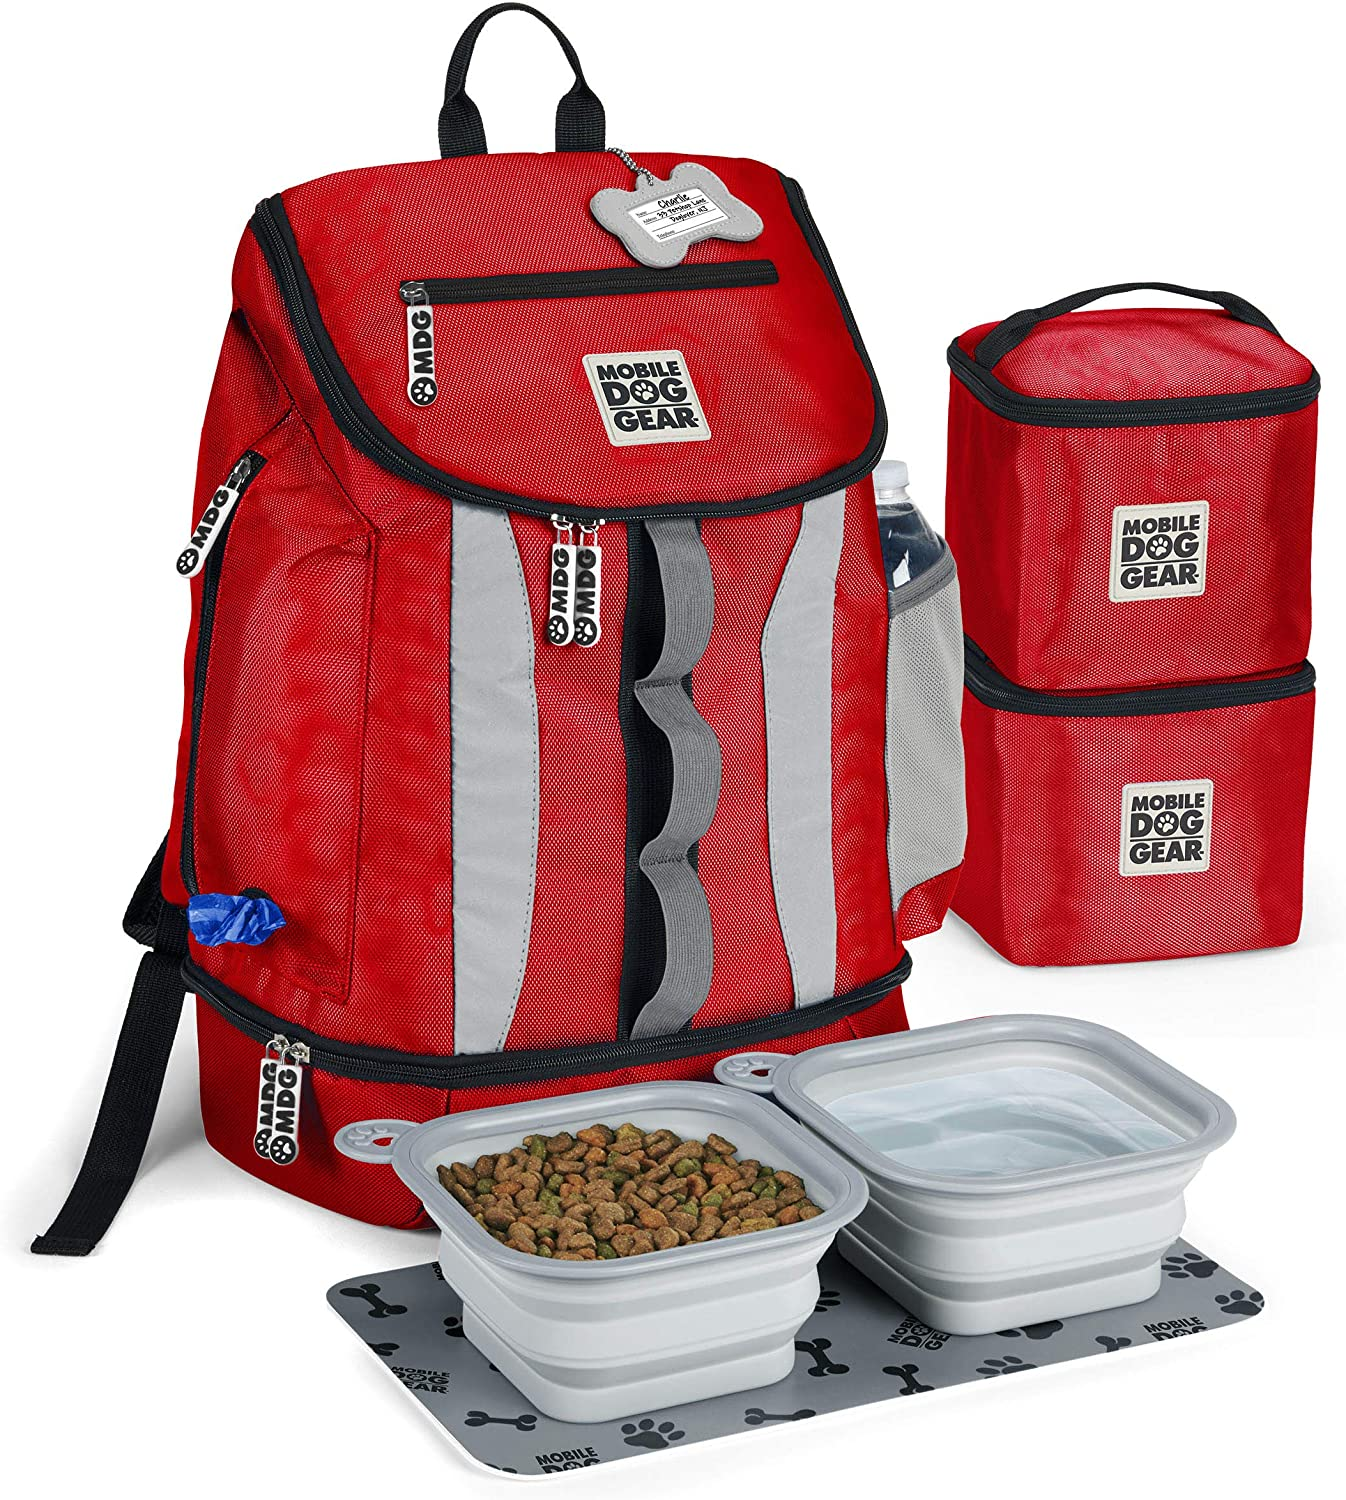 Mobile Dog Gear, Dog Travel Bag, Drop Bottom Week Away Backpack for Medium and Large Dogs, Includes 2 Lined Food Carriers and 2 Collapsible Dog Bowls, Bright Red